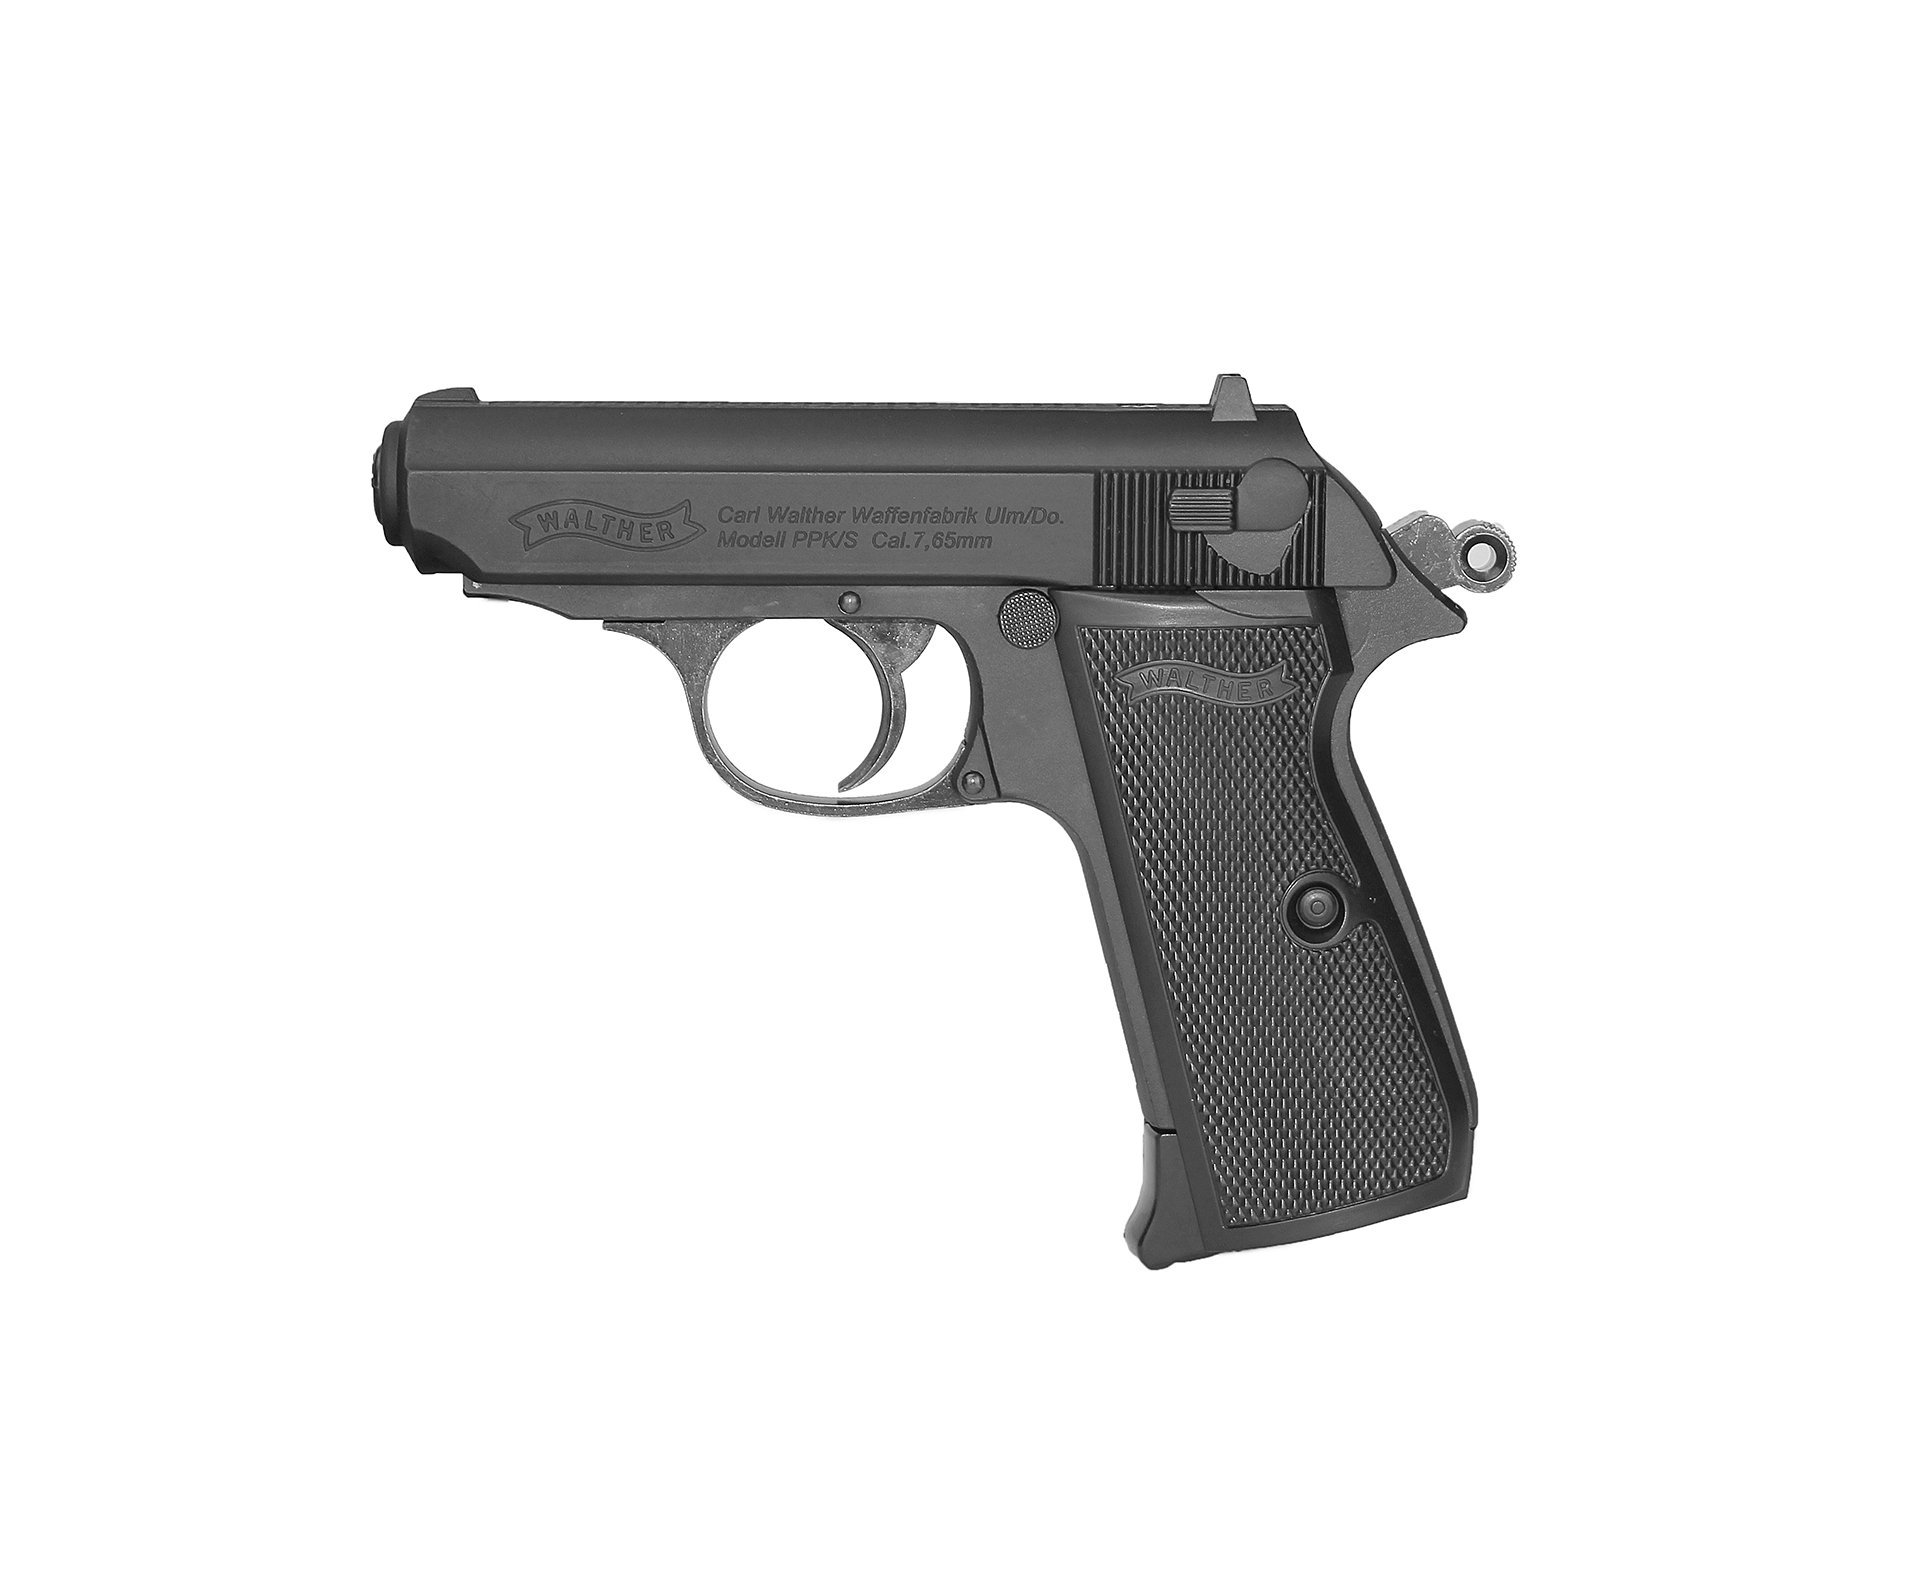 Pistola De Pressão Co2 Walther Ppk/s Blowback 4,5mm